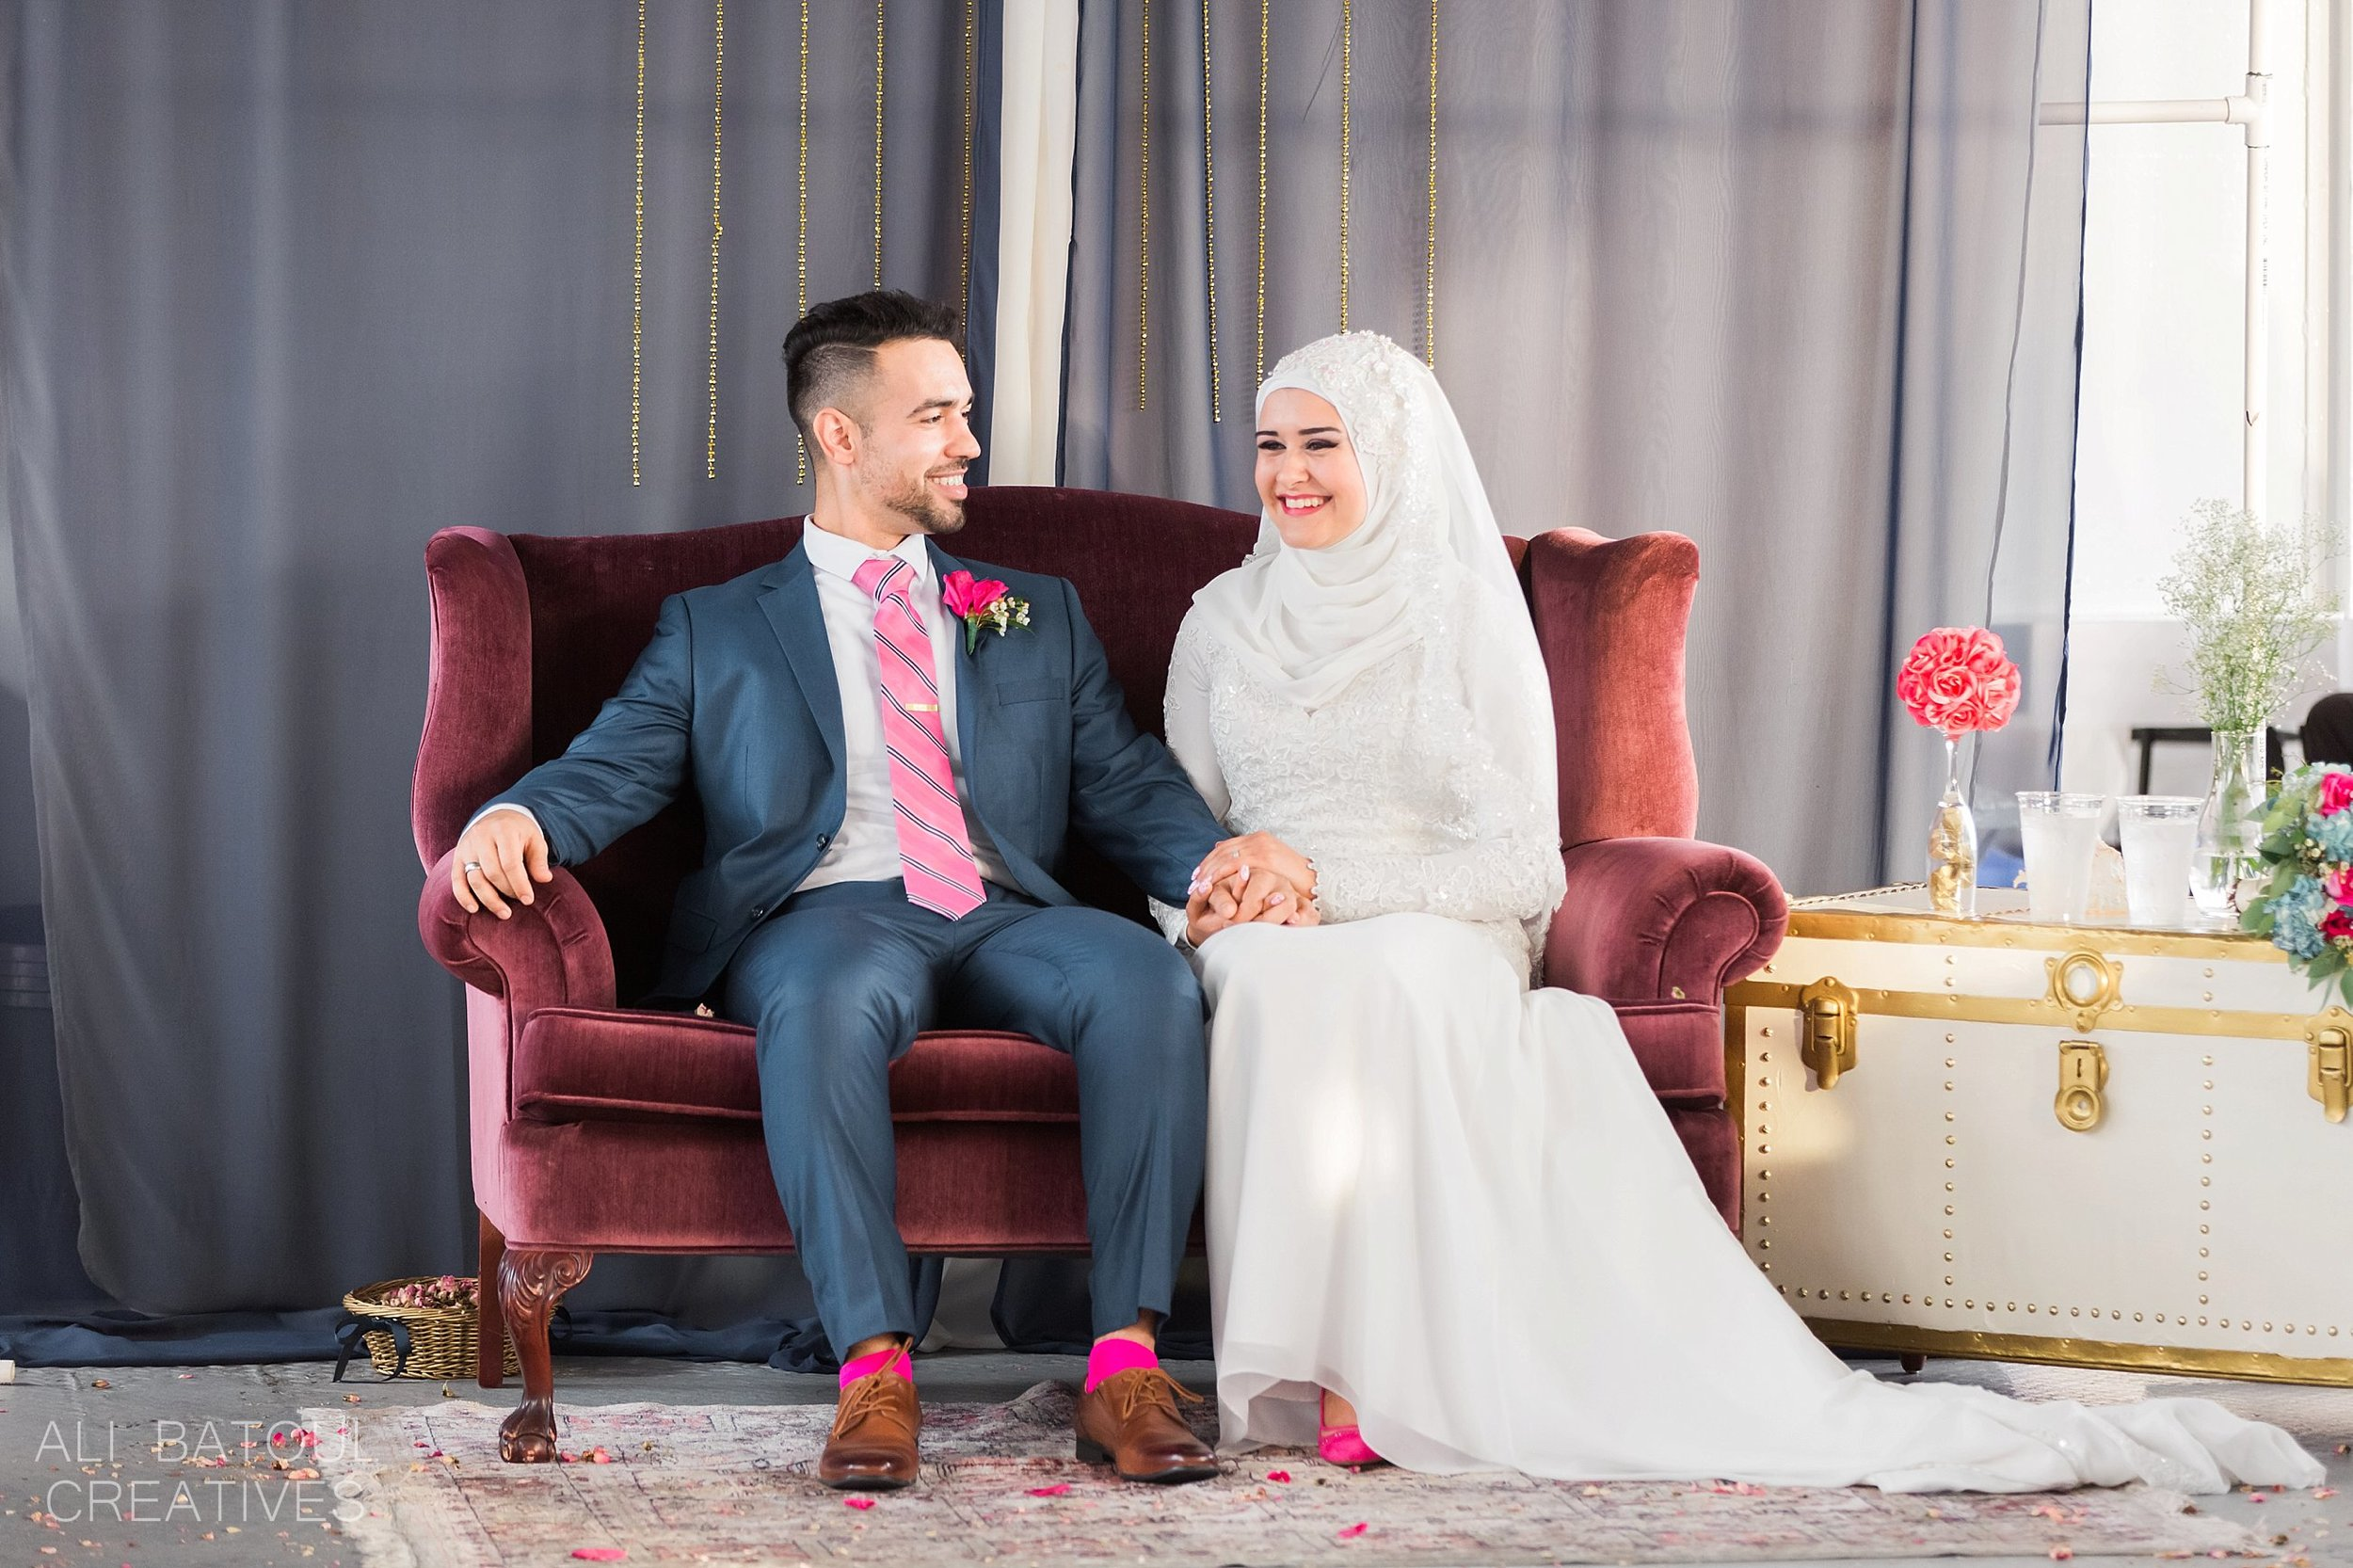 Hanan + Said - Ali Batoul Creatives Fine Art Wedding Photography_0302.jpg